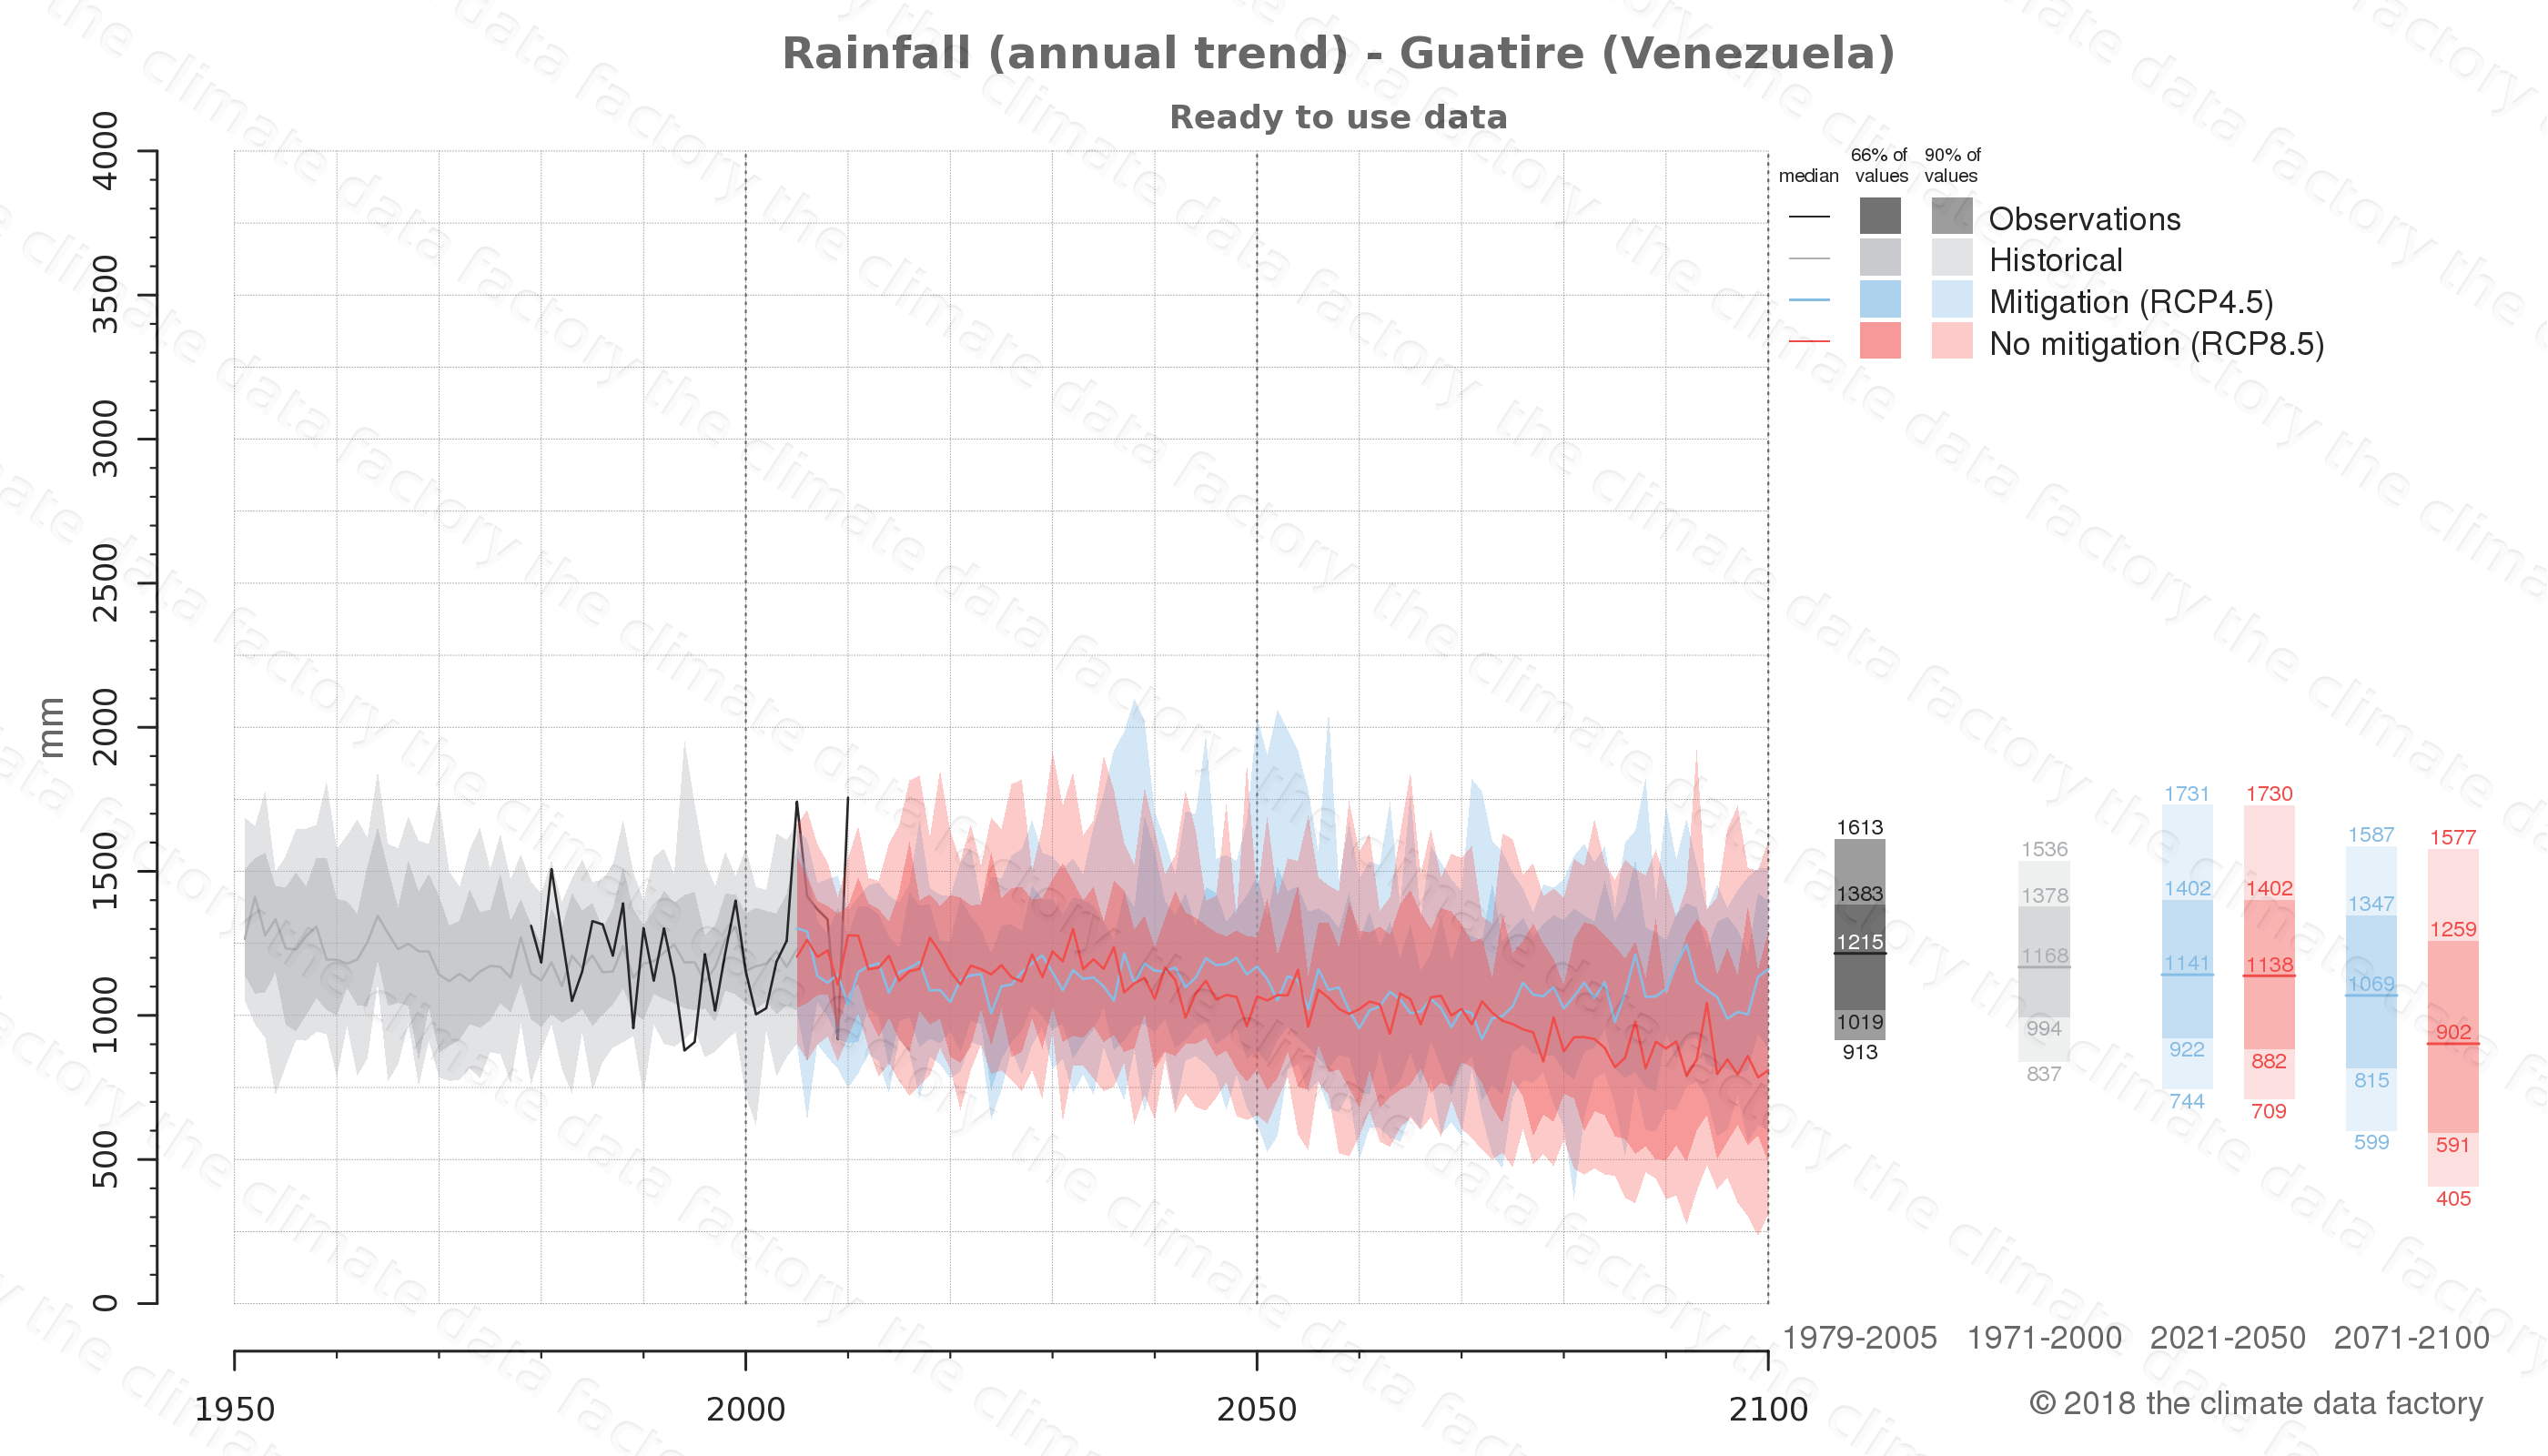 climate change data policy adaptation climate graph city data rainfall guatire venezuela